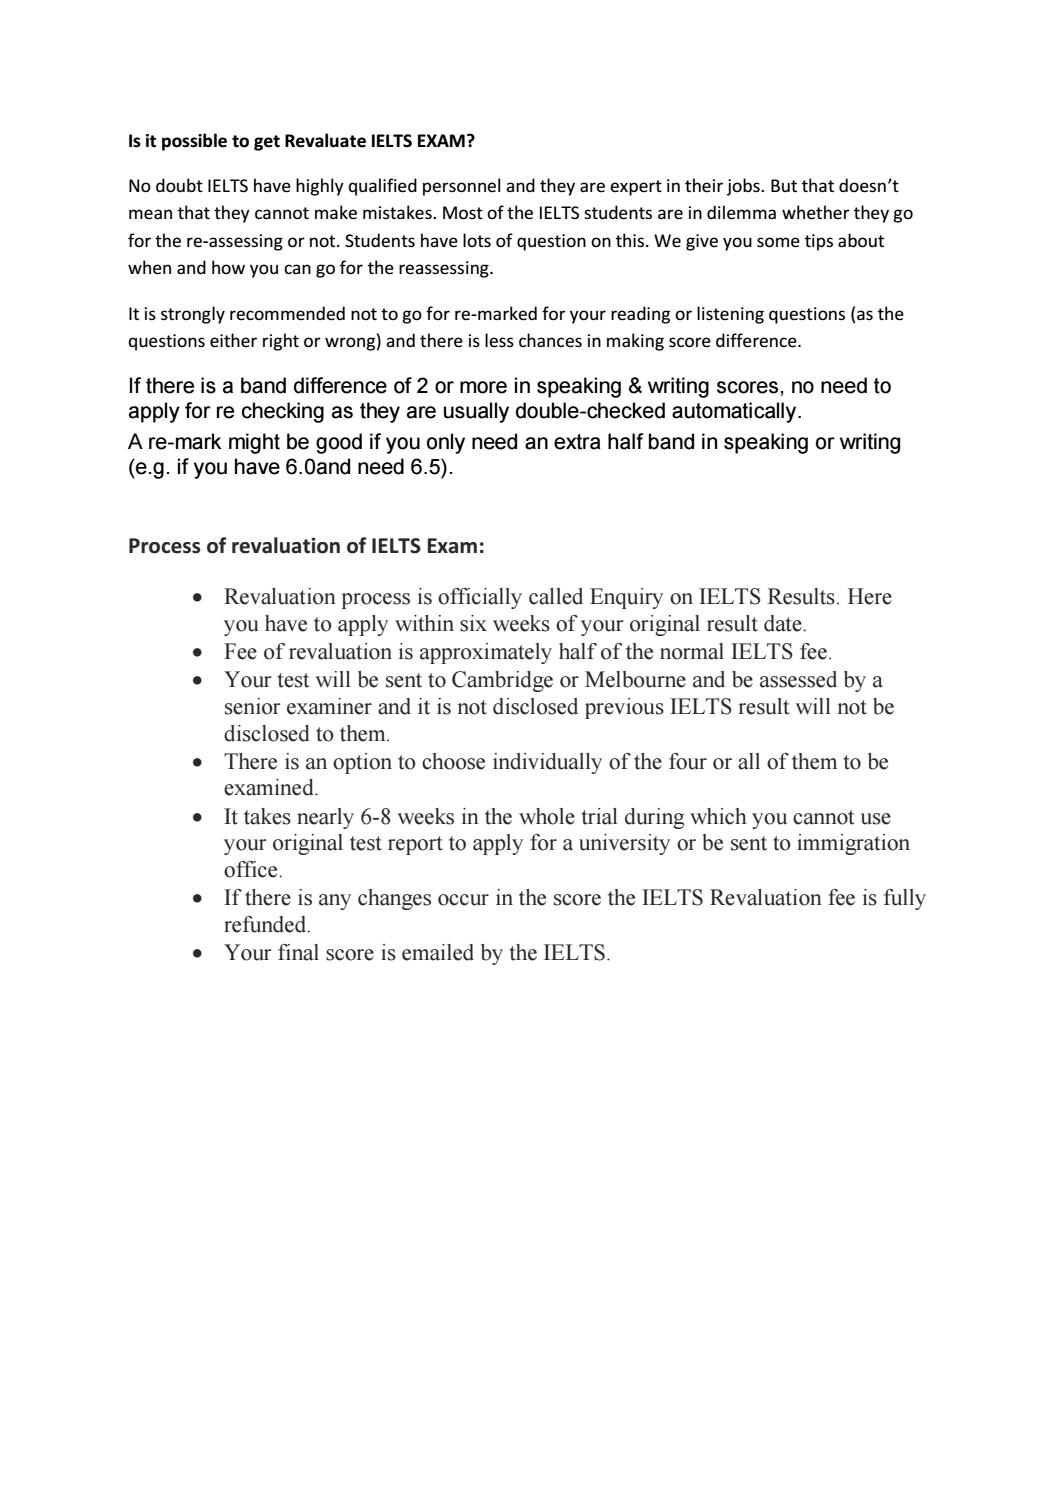 Is it possible to get Revaluate IELTS EXAM? by Next World